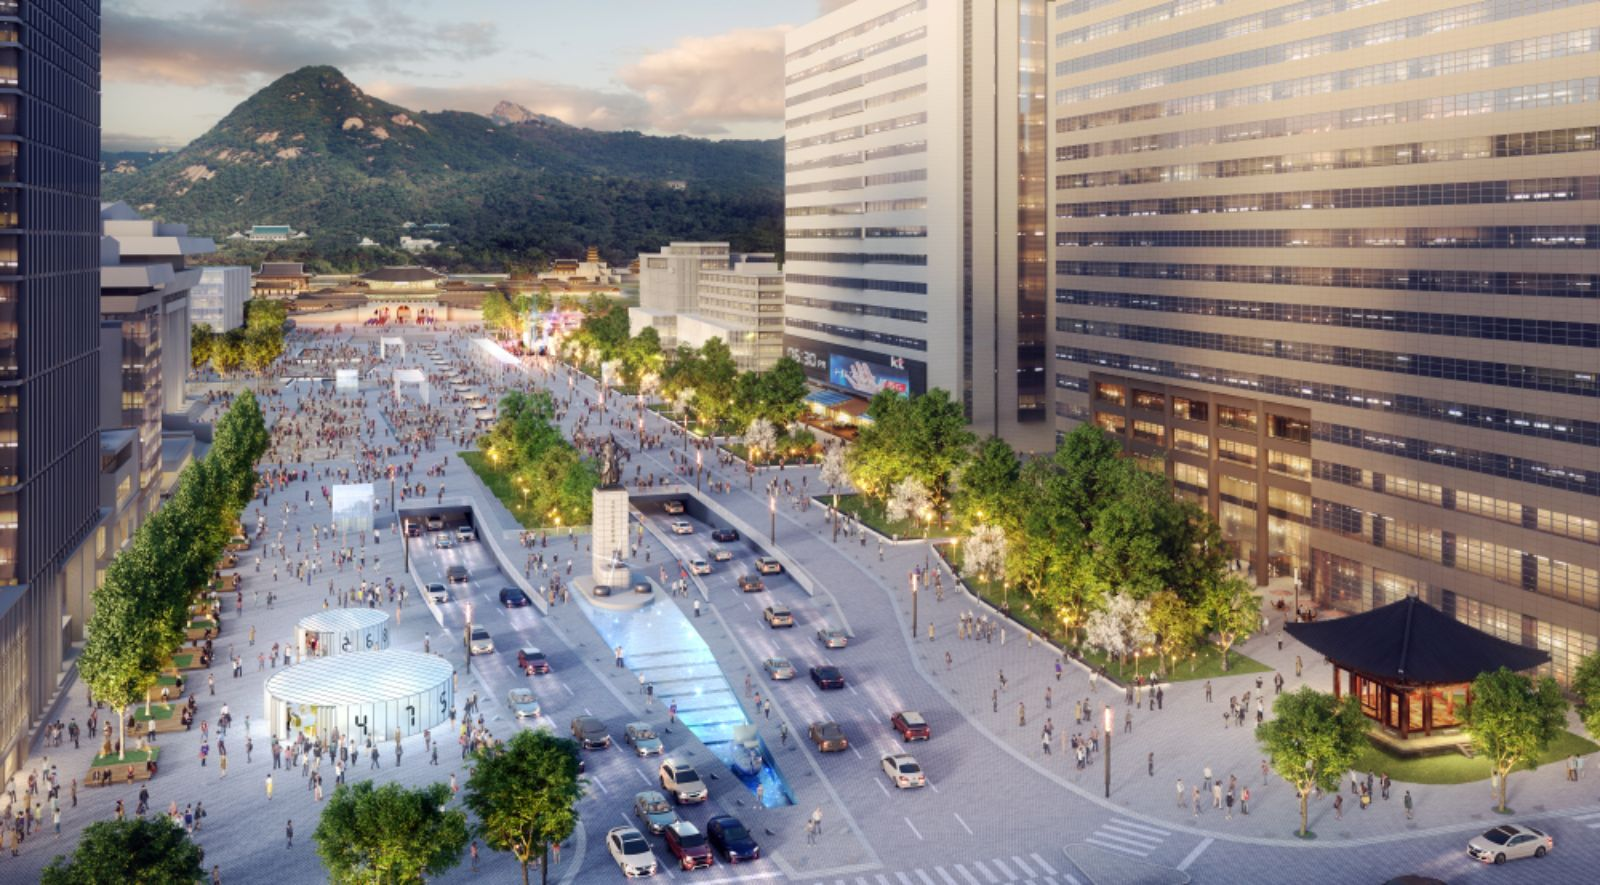 New Gwanghwamun Square by Daniel Valle Architects + Kunchook-Moonhwa – aasarchitecture